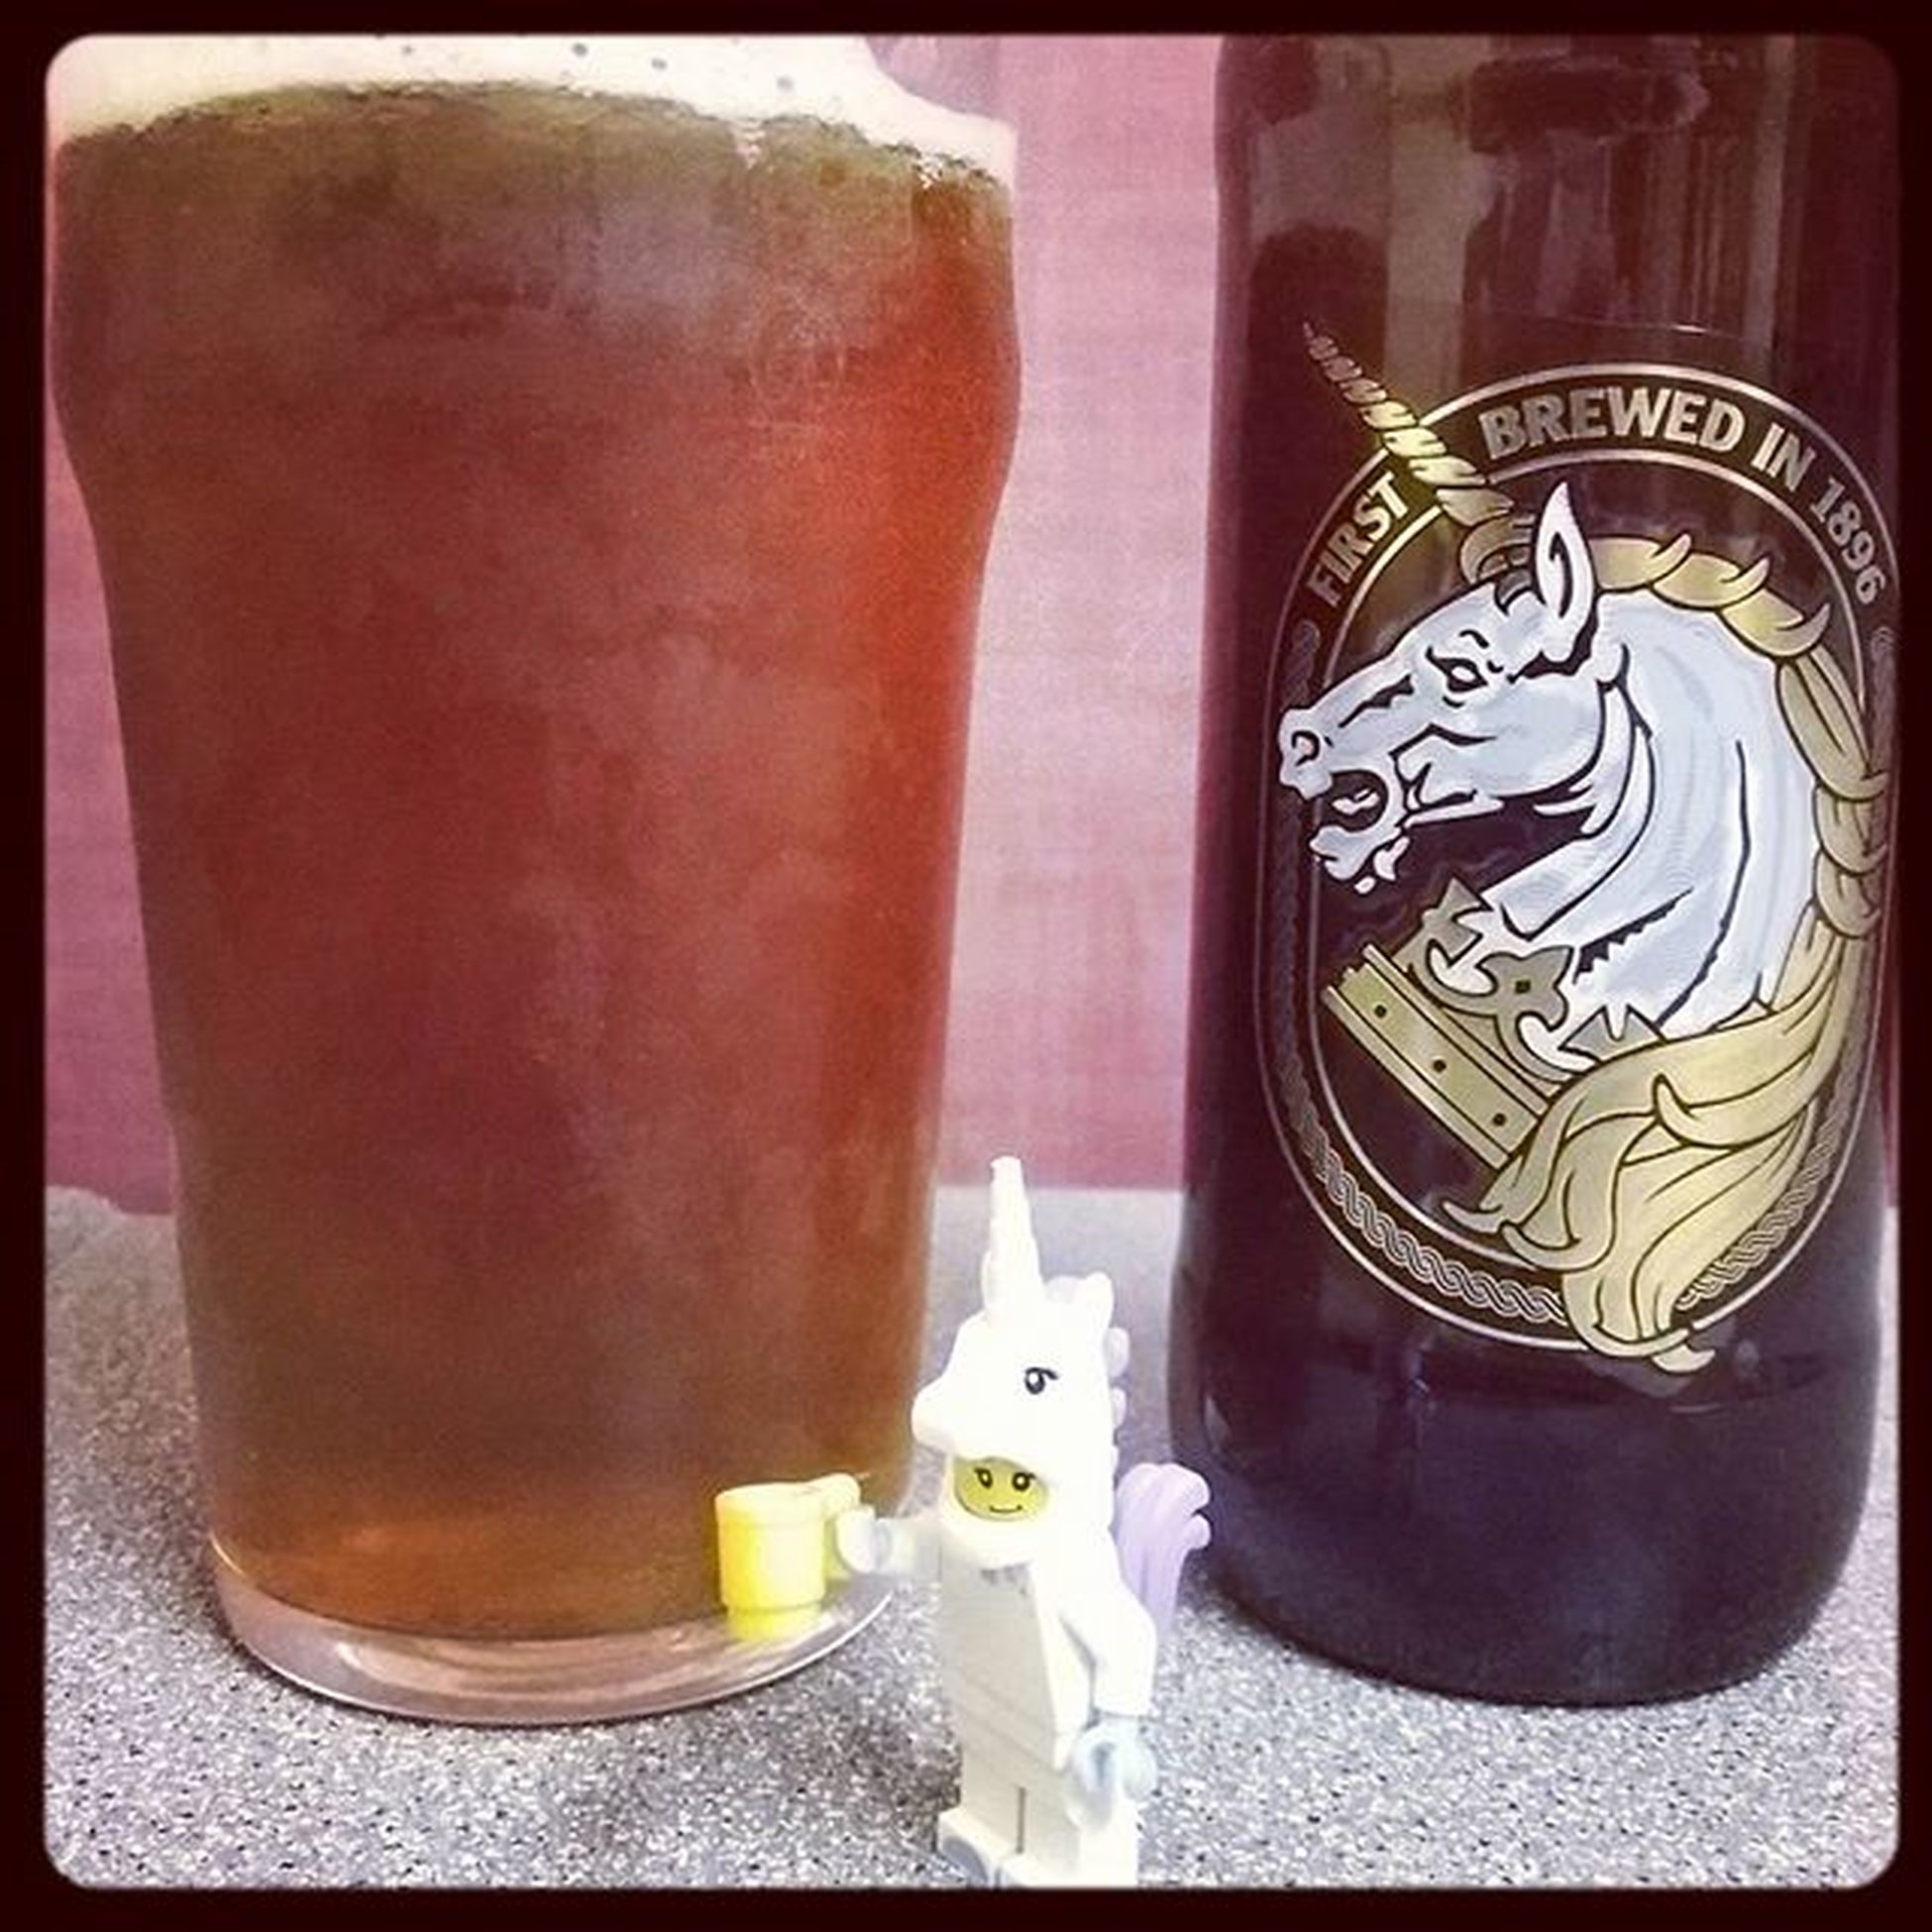 This was just too simple. My choice of beers is definitely influenced by my Lego minifigure collection. Beerandbricks Beerandtoys LEGO Legominifigures Unicorngirl Beerstagram